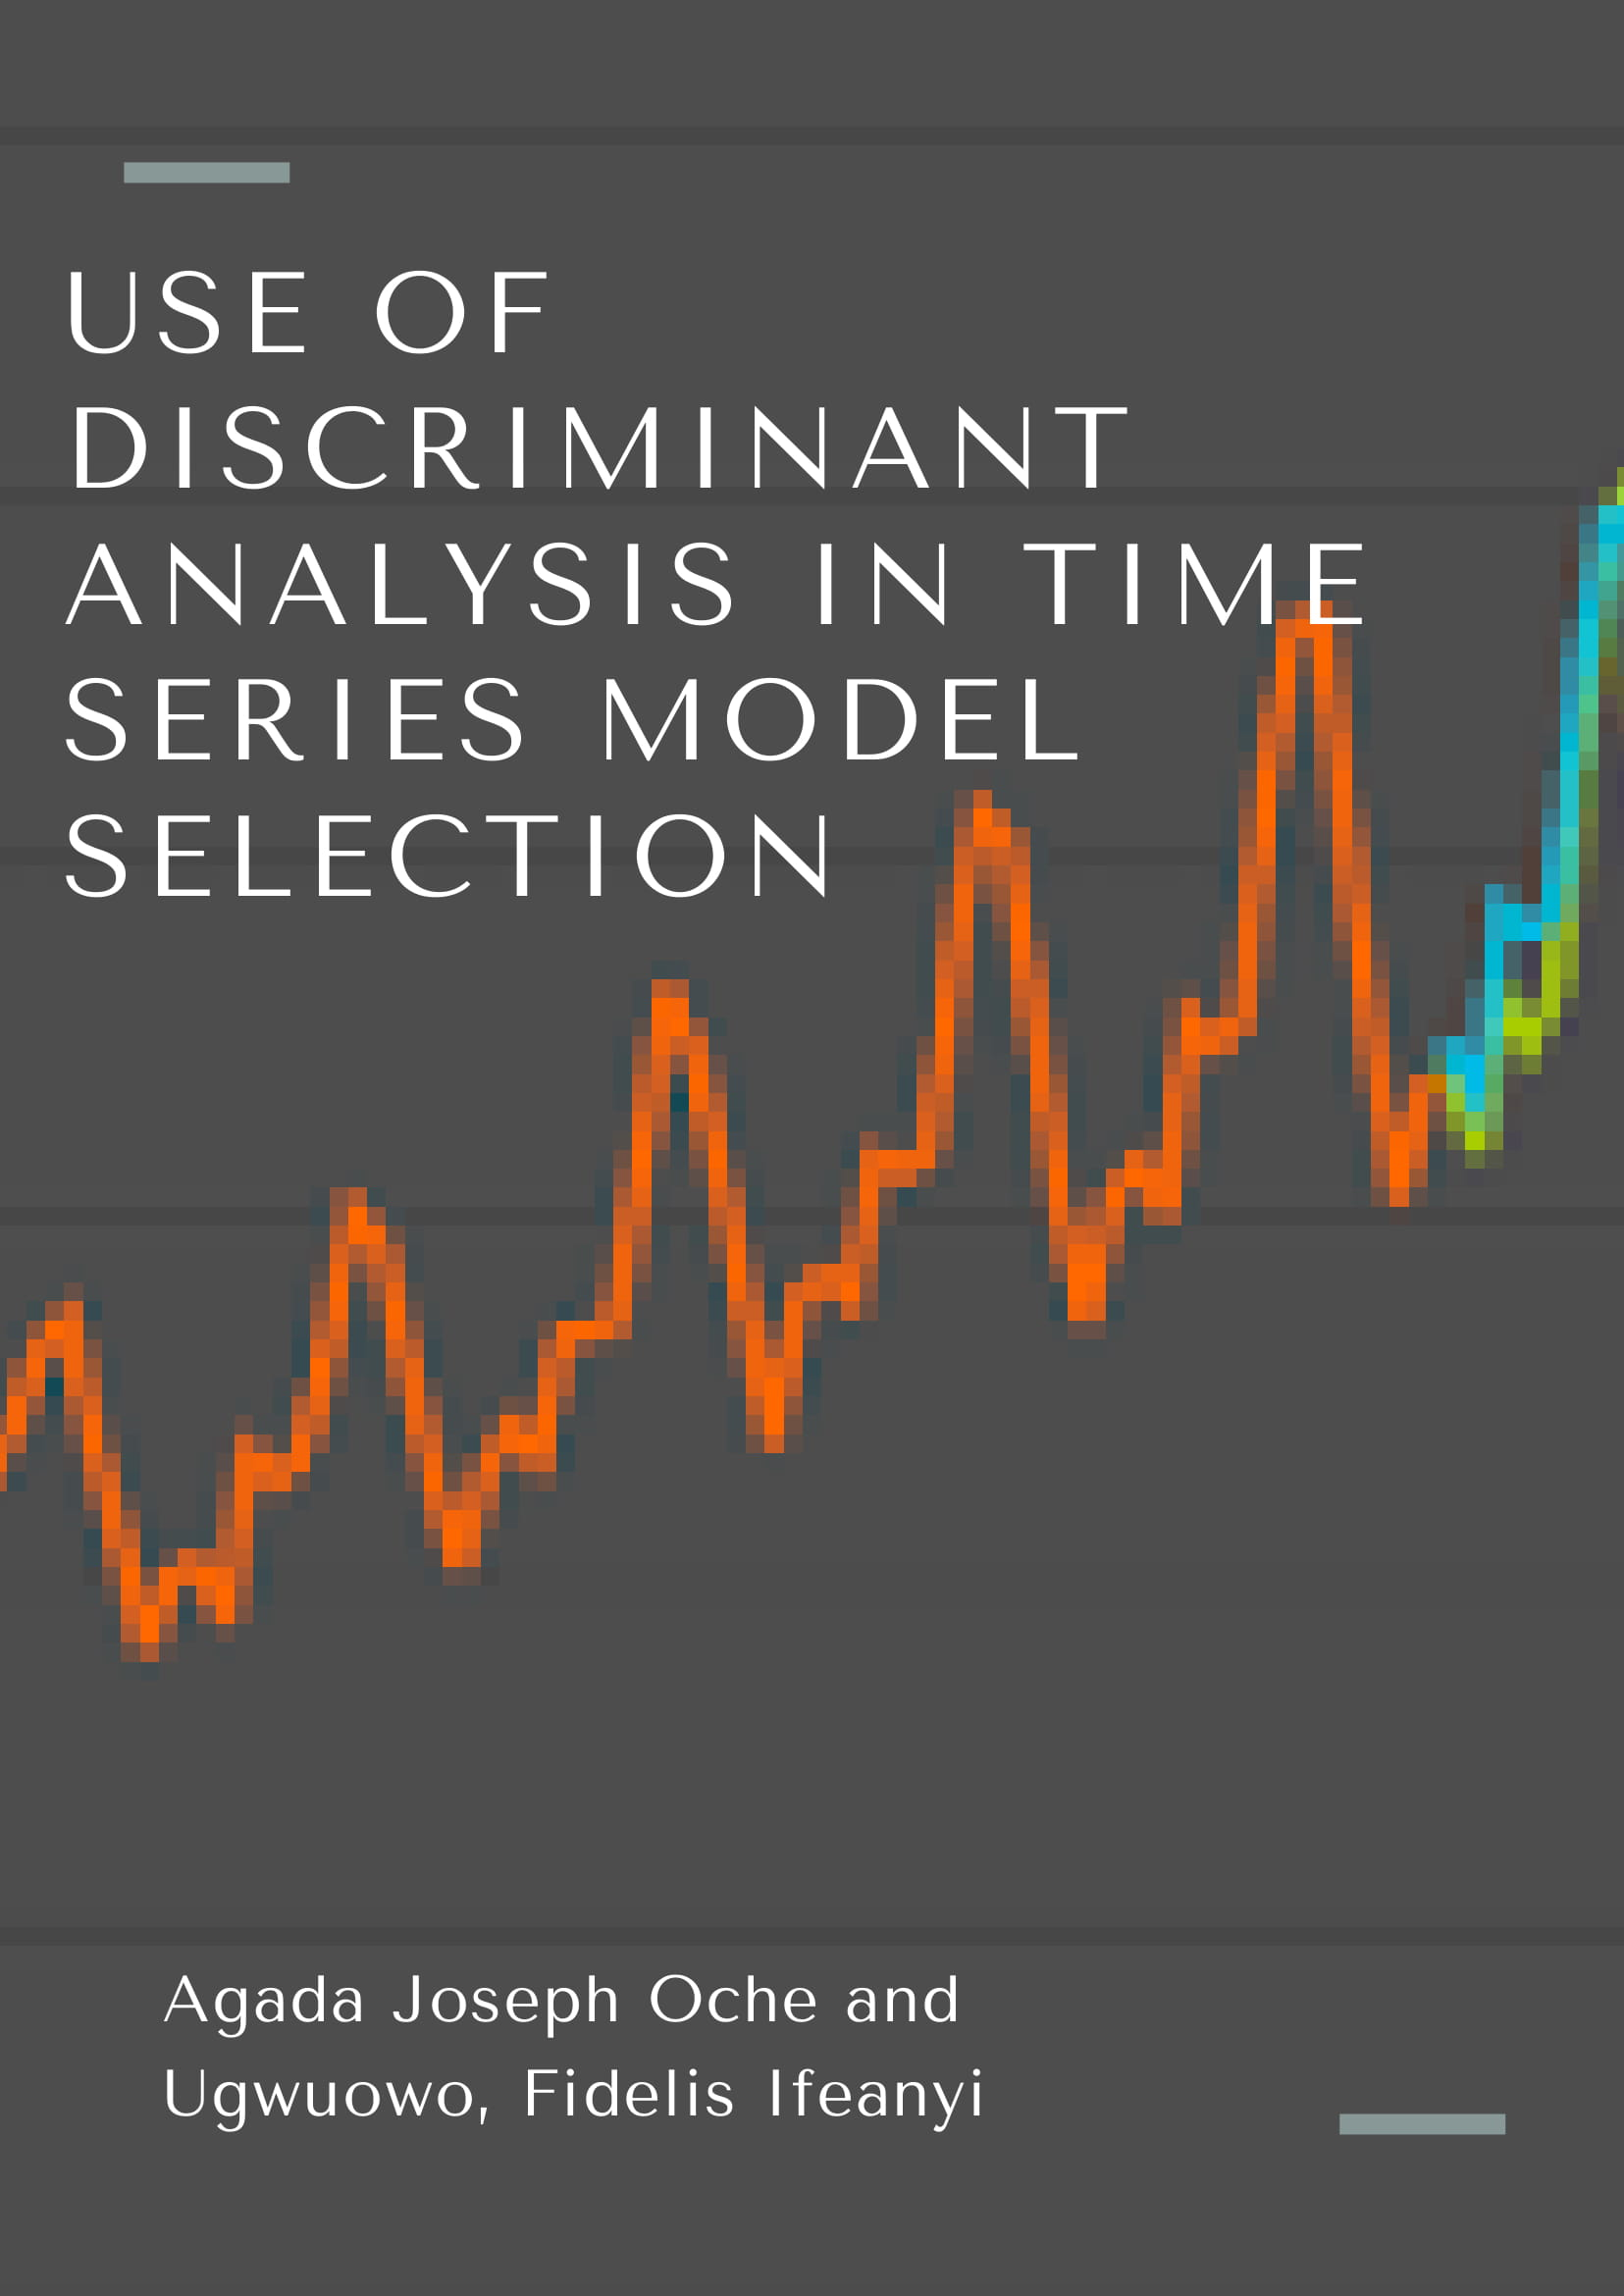 Use of Discriminant Analysis in Time Series Model Selection image